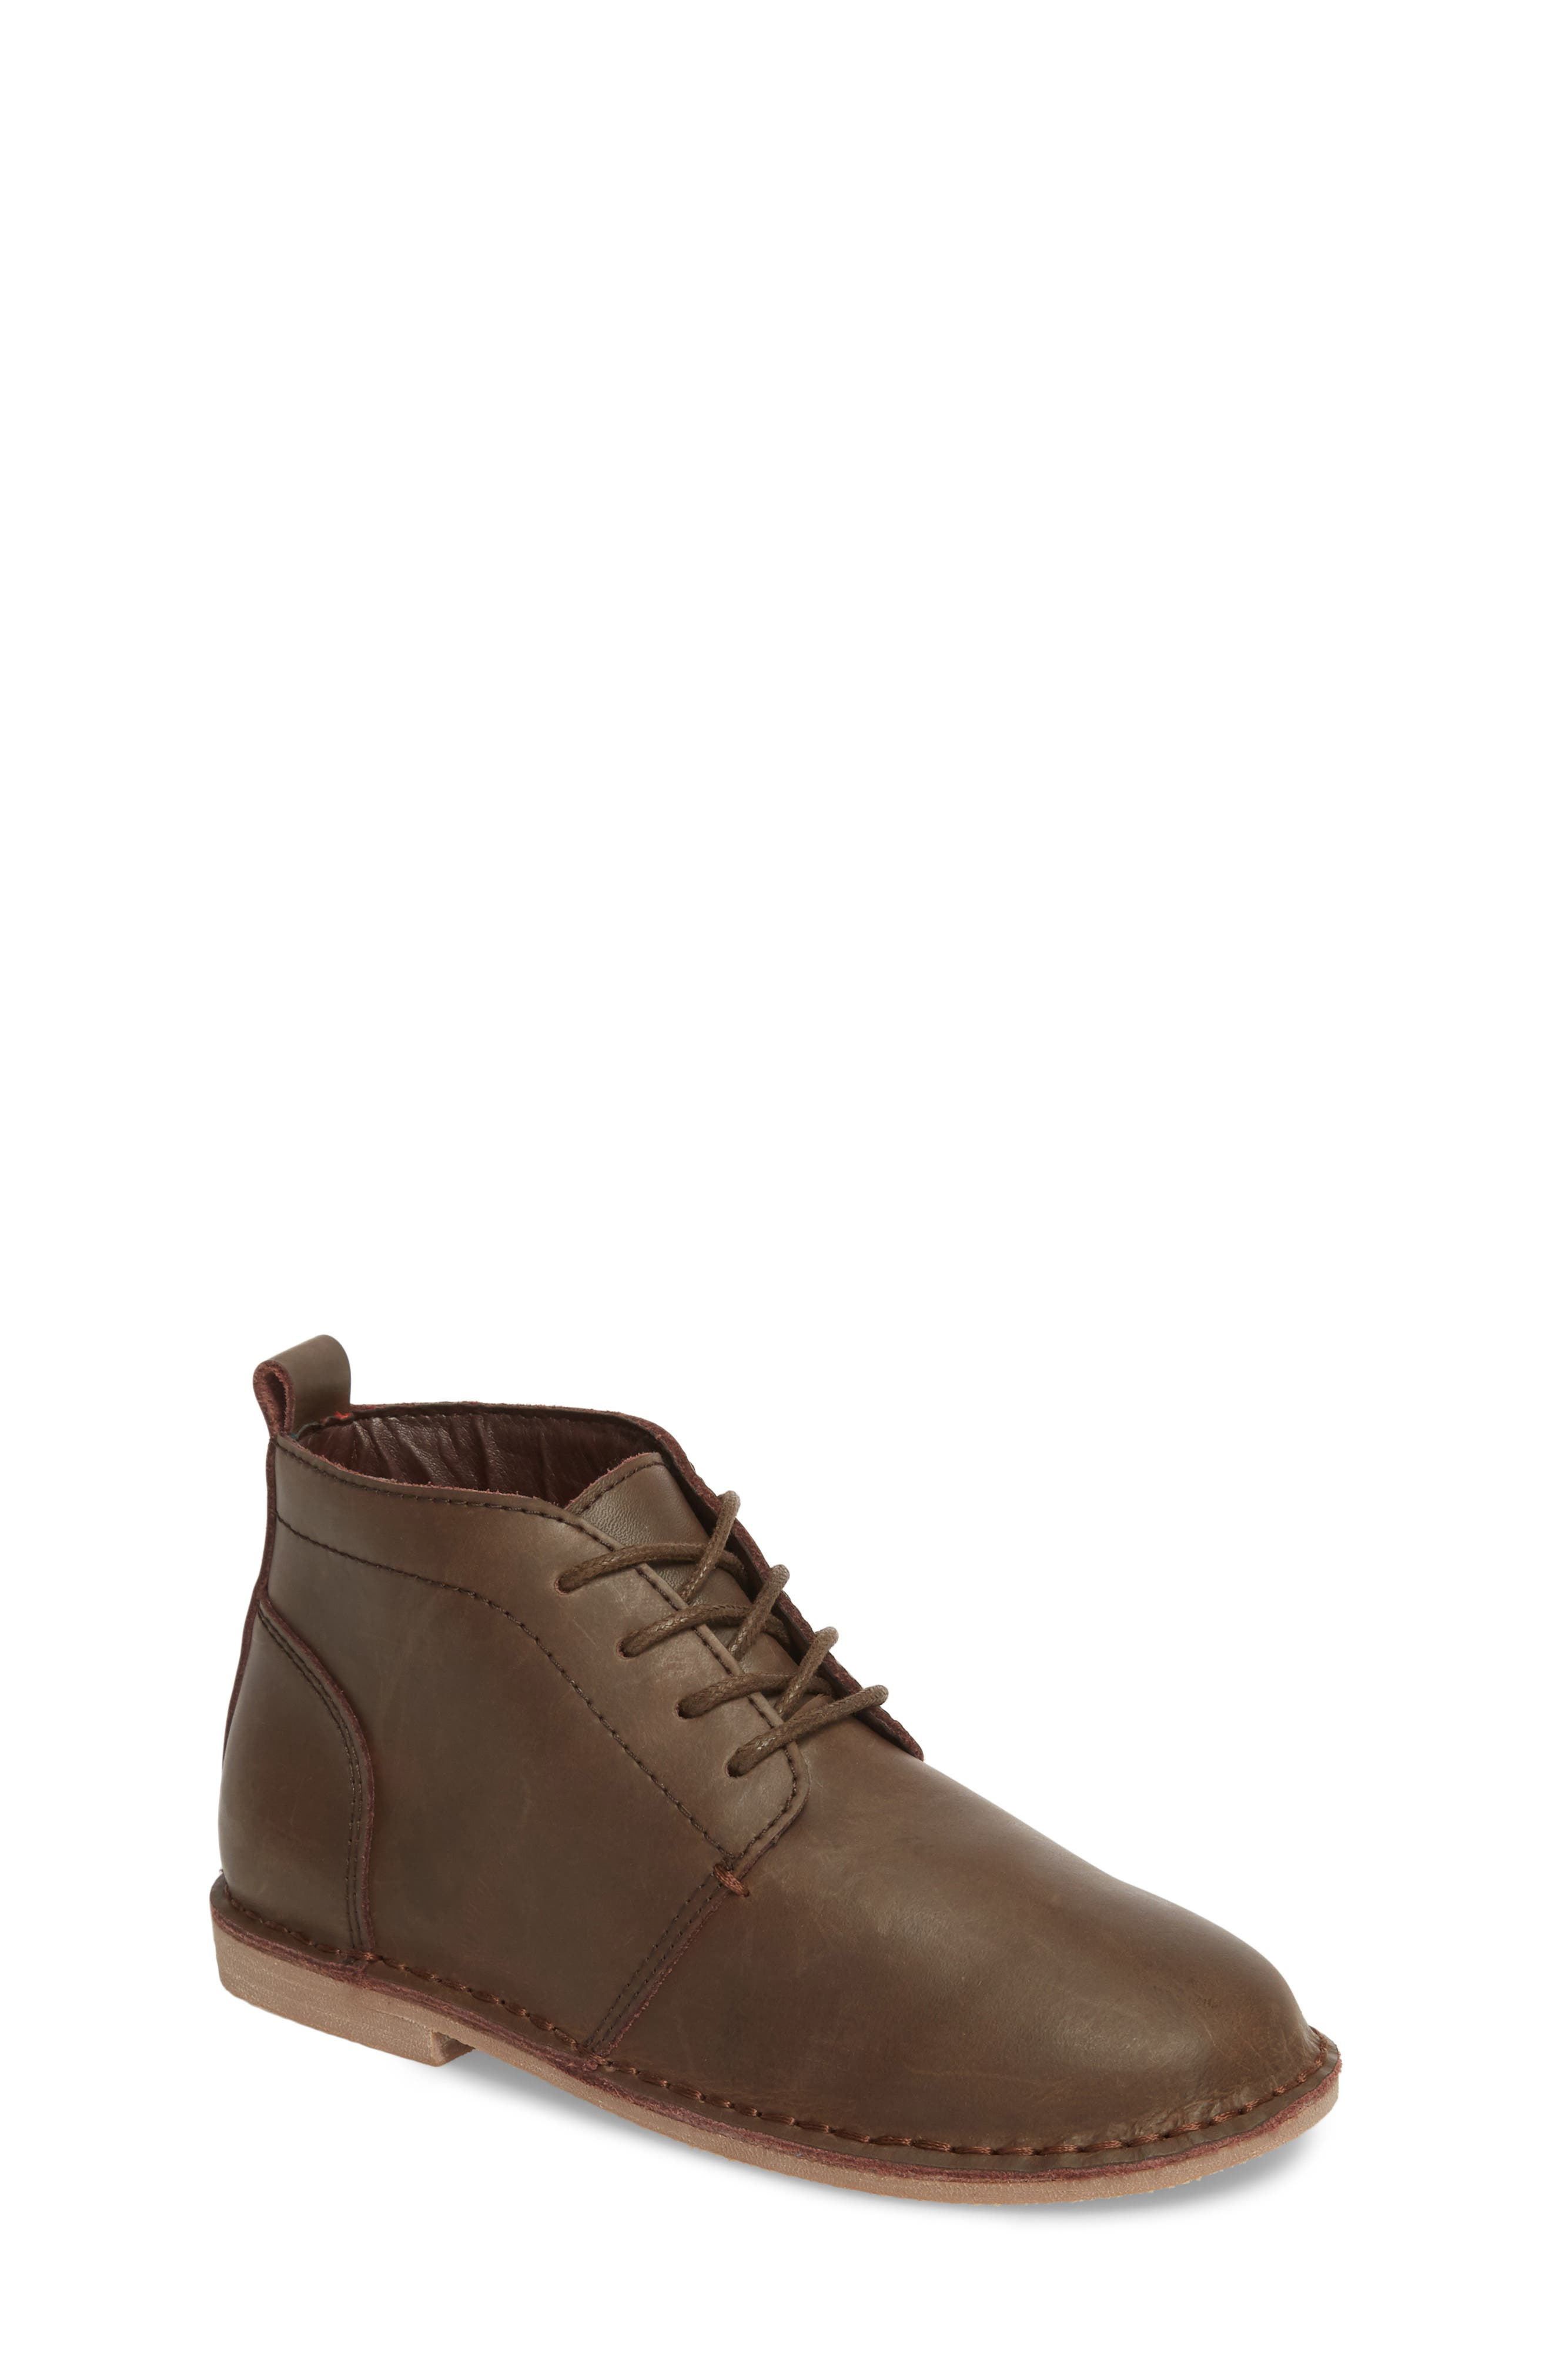 Finley Boot,                         Main,                         color, 240